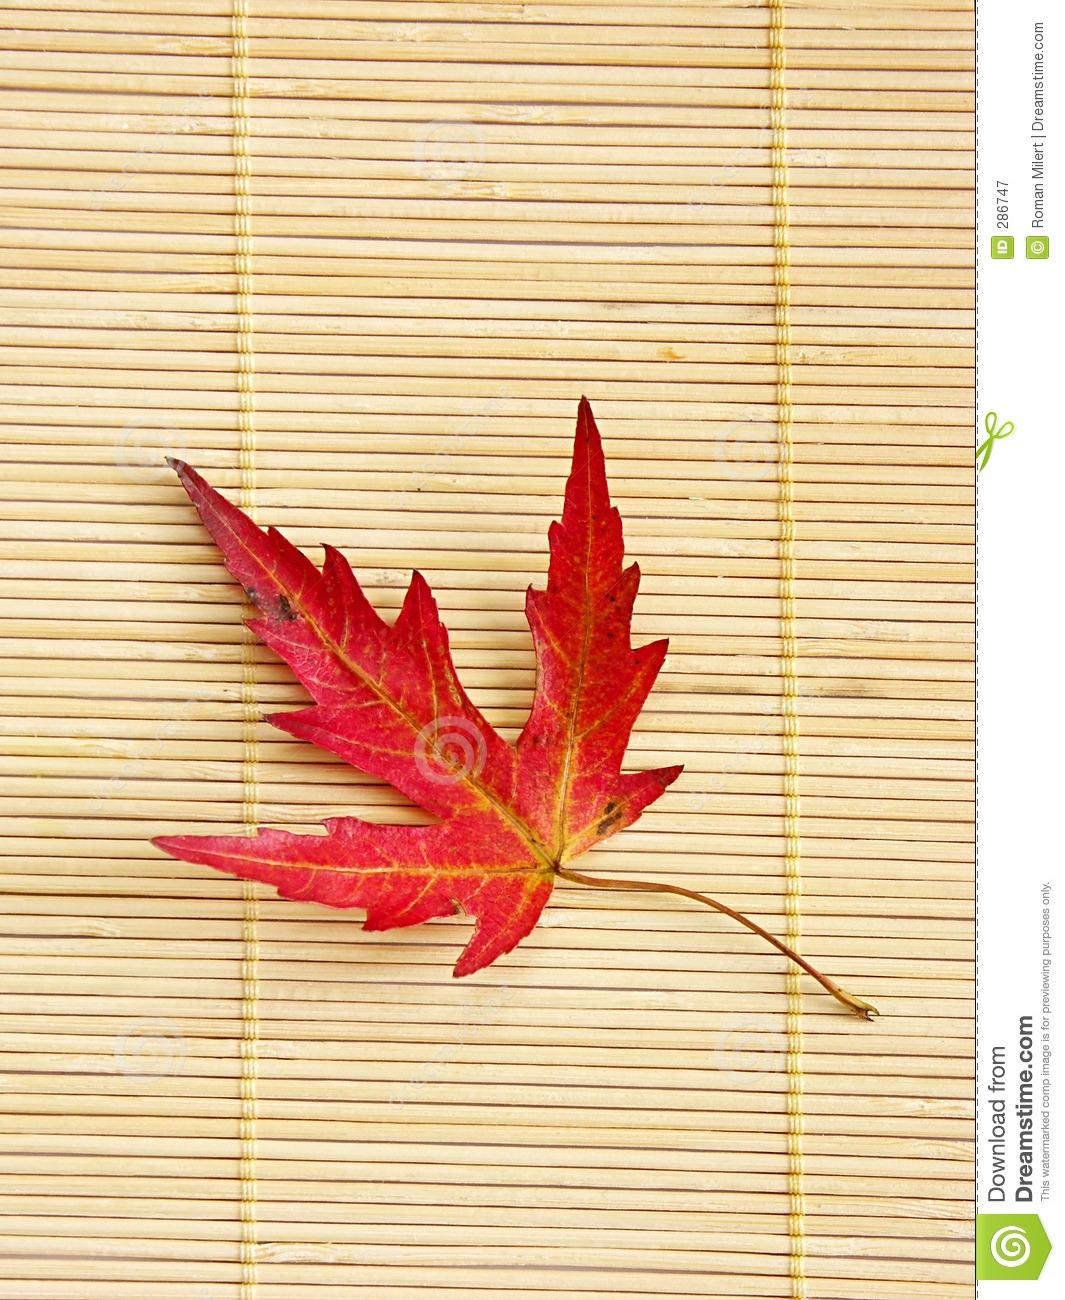 Leafred